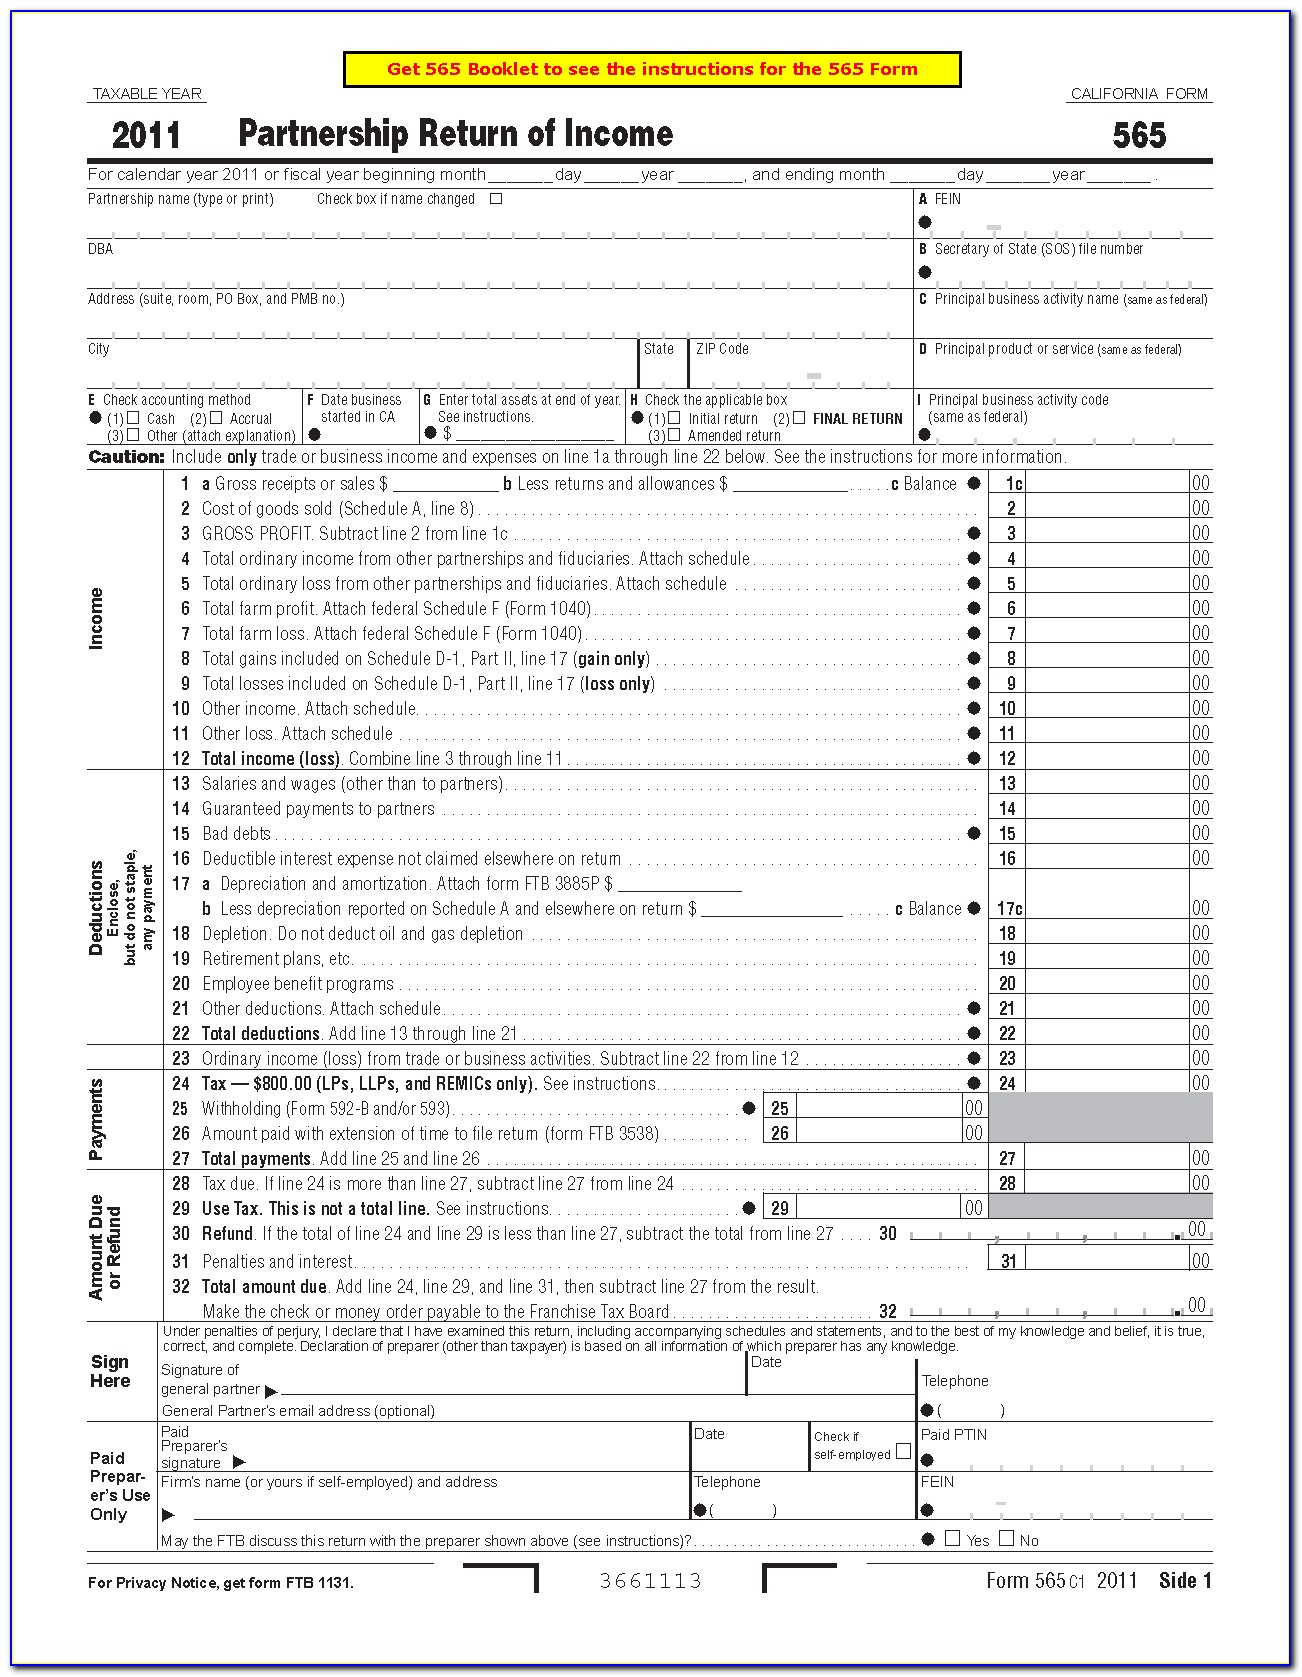 California State Tax Forms 540 Instructions